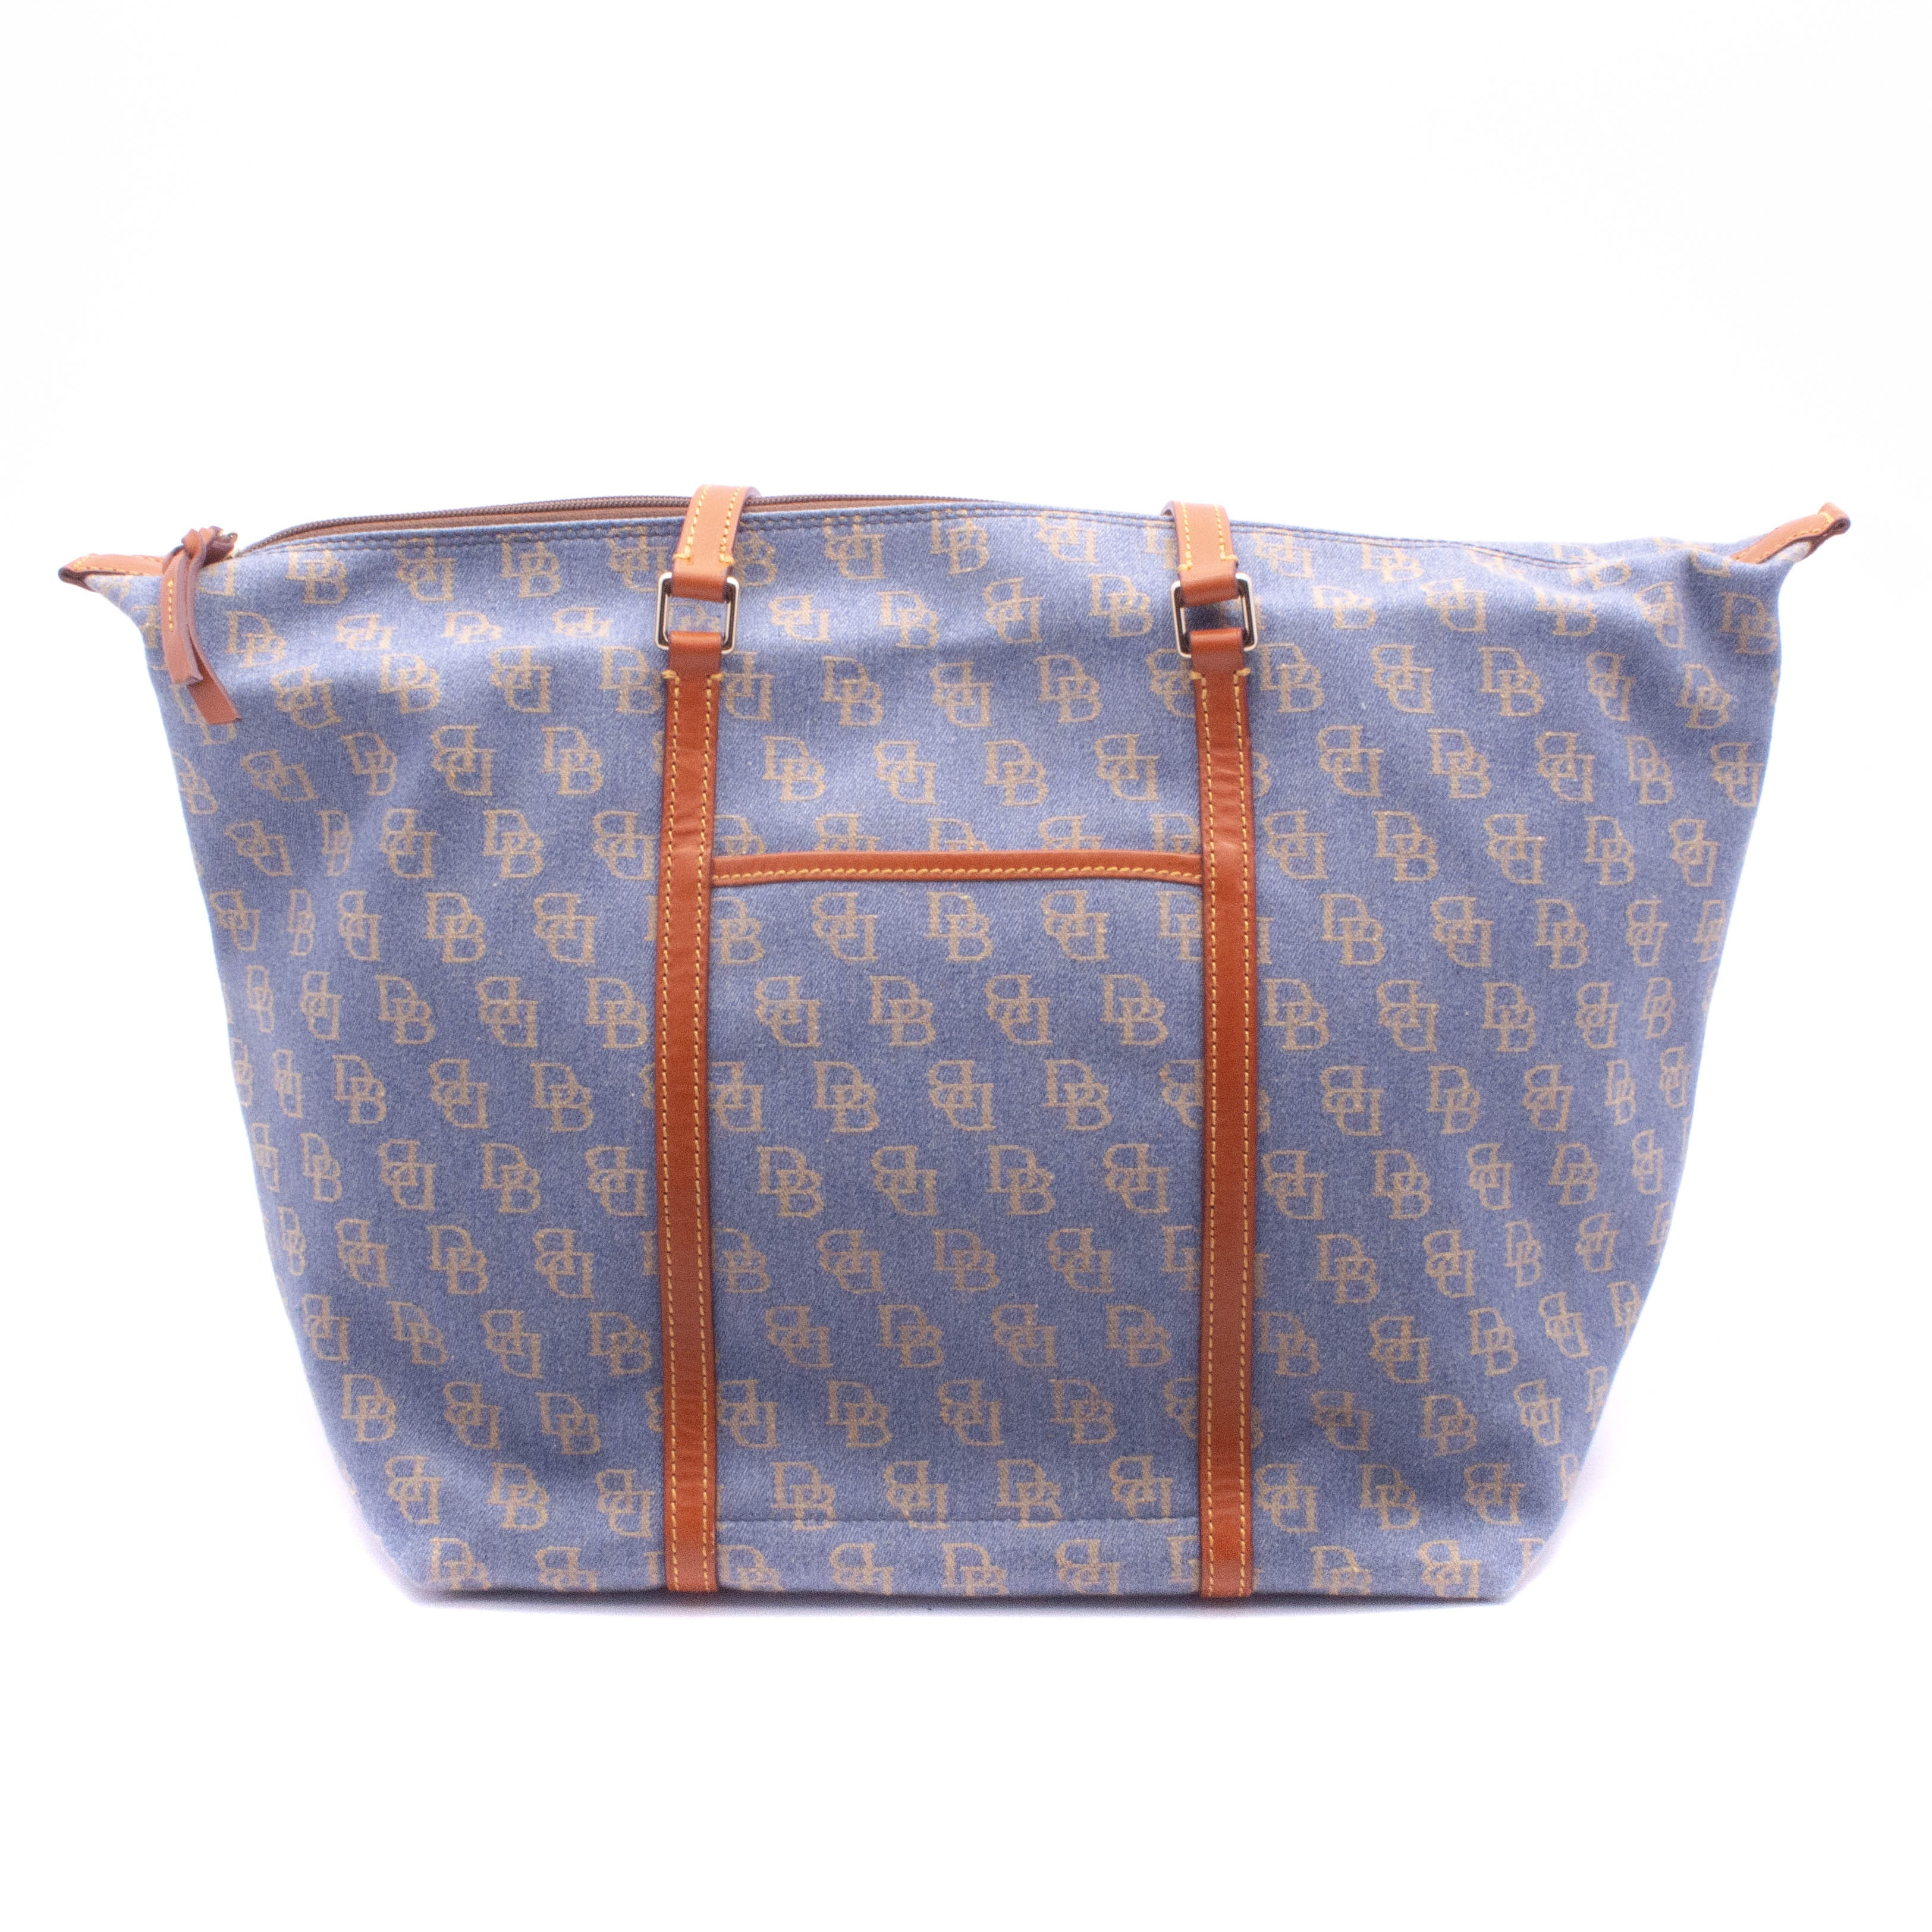 Dooney & Bourke Large Chambray Denim Signature Canvas and Tanned Leather Tote